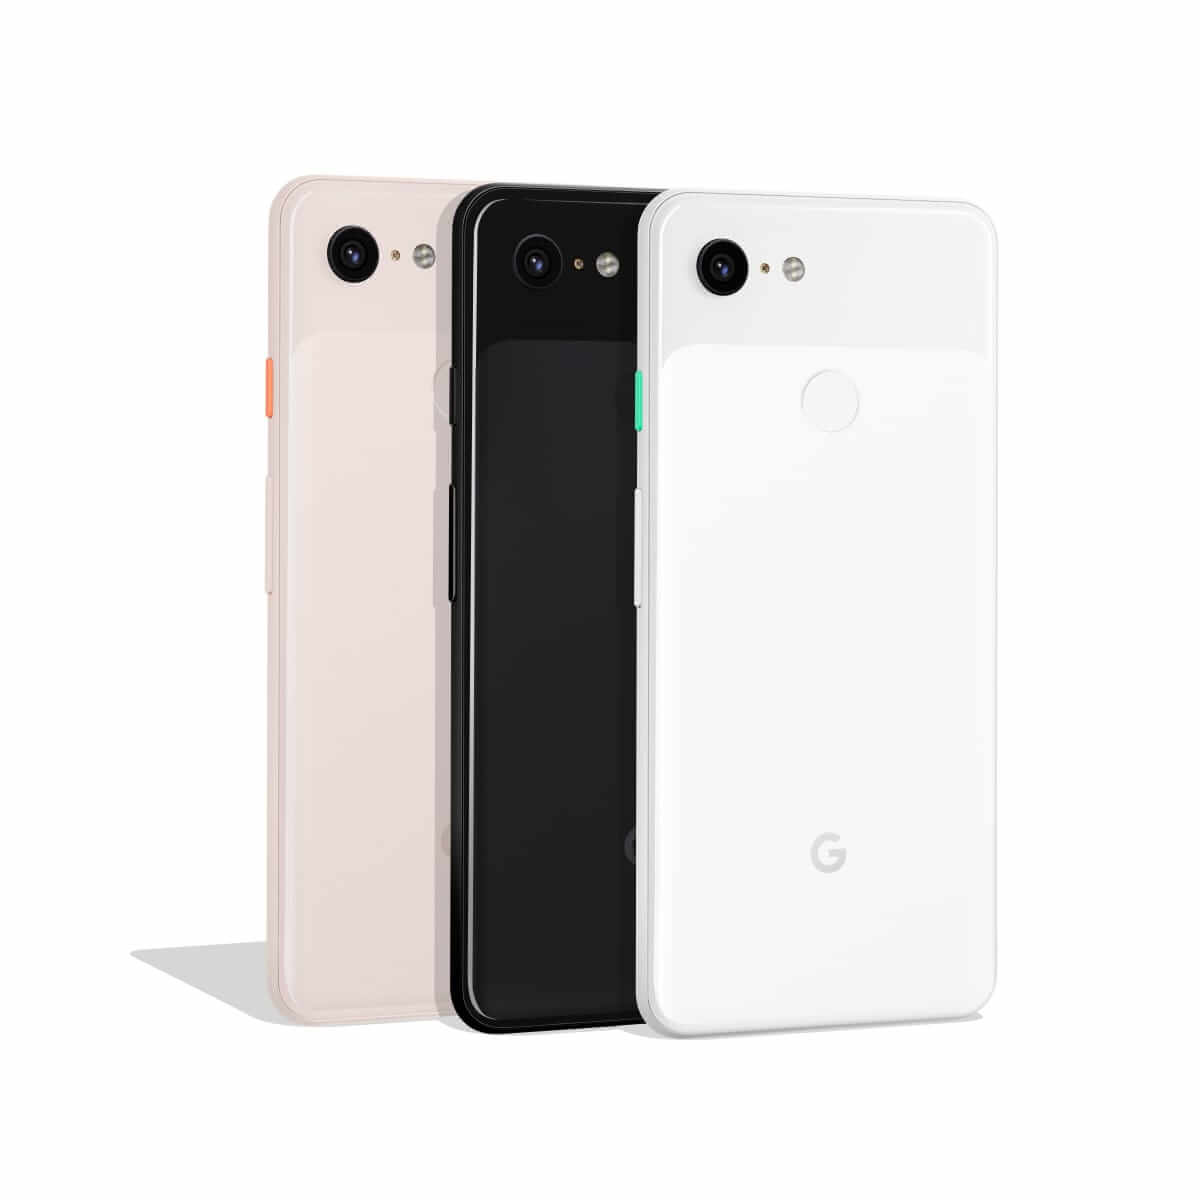 Google Pixel 3 Not Pink, Just Black and Clearly White